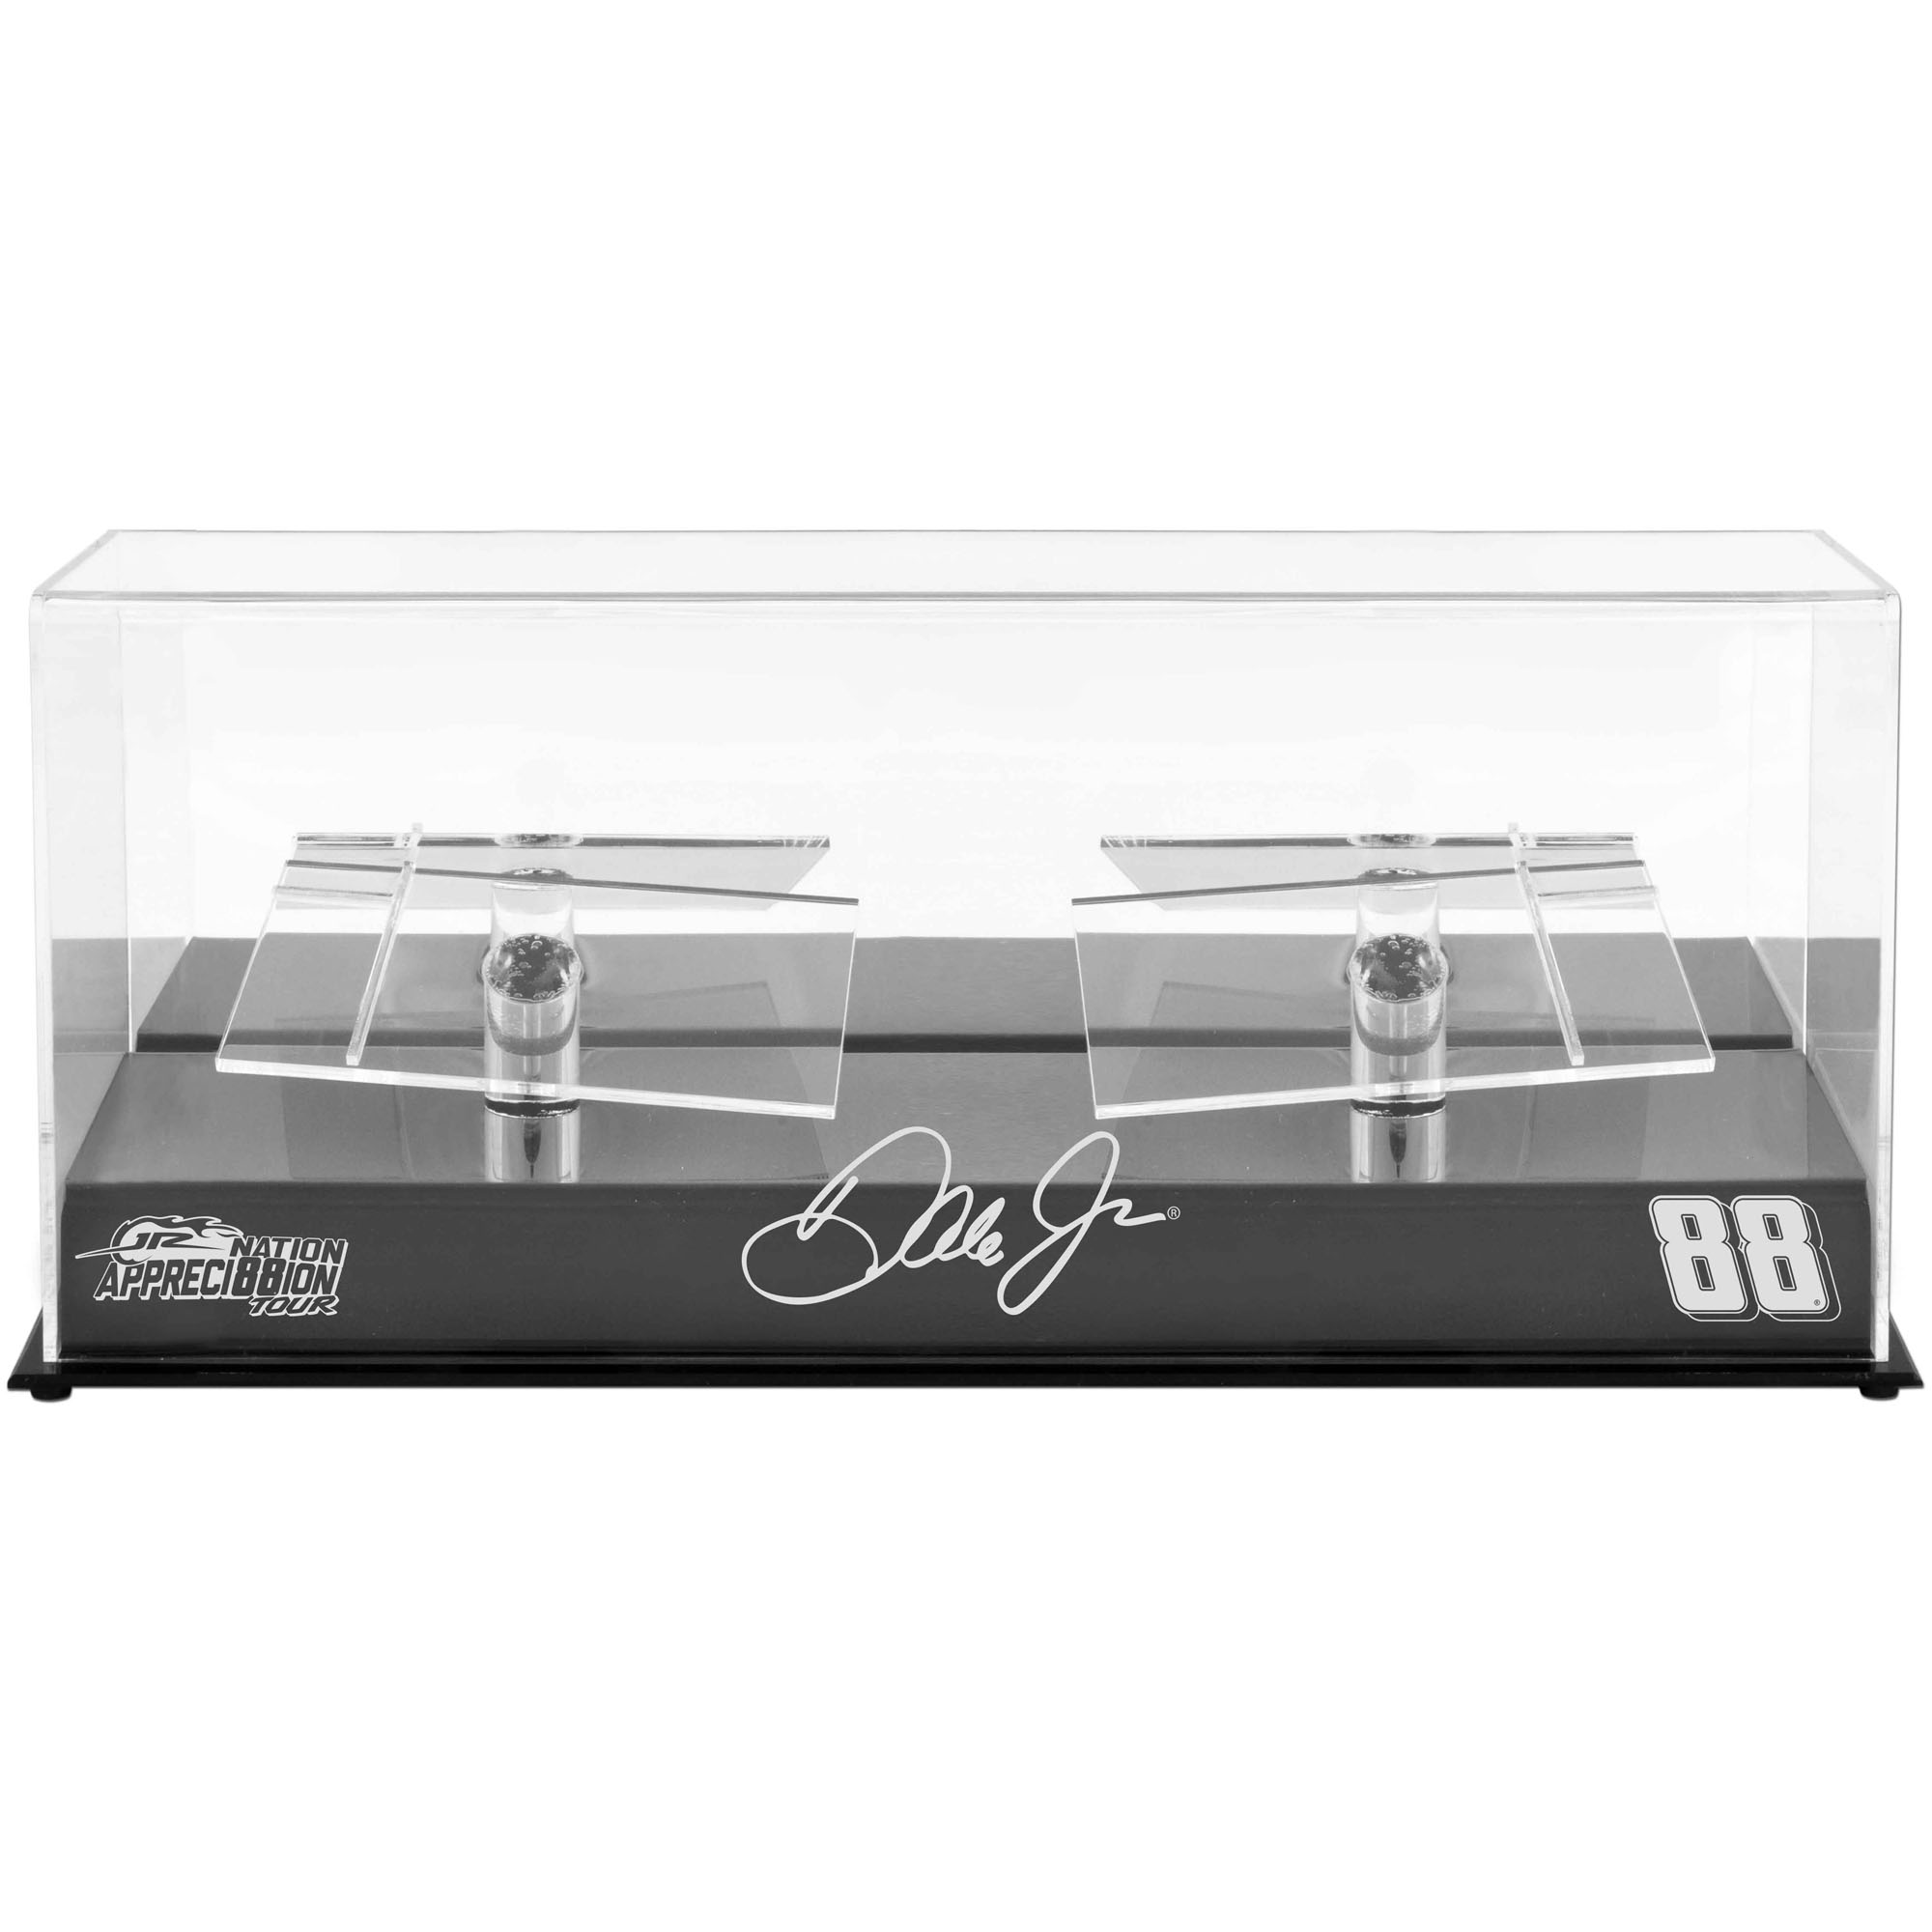 Dale Earnhardt Jr. #88 Hendrick Motorsports 2 Car 1/24 Scale Die Cast Display Case with Platforms and JR Nation Appreci88ion Logo